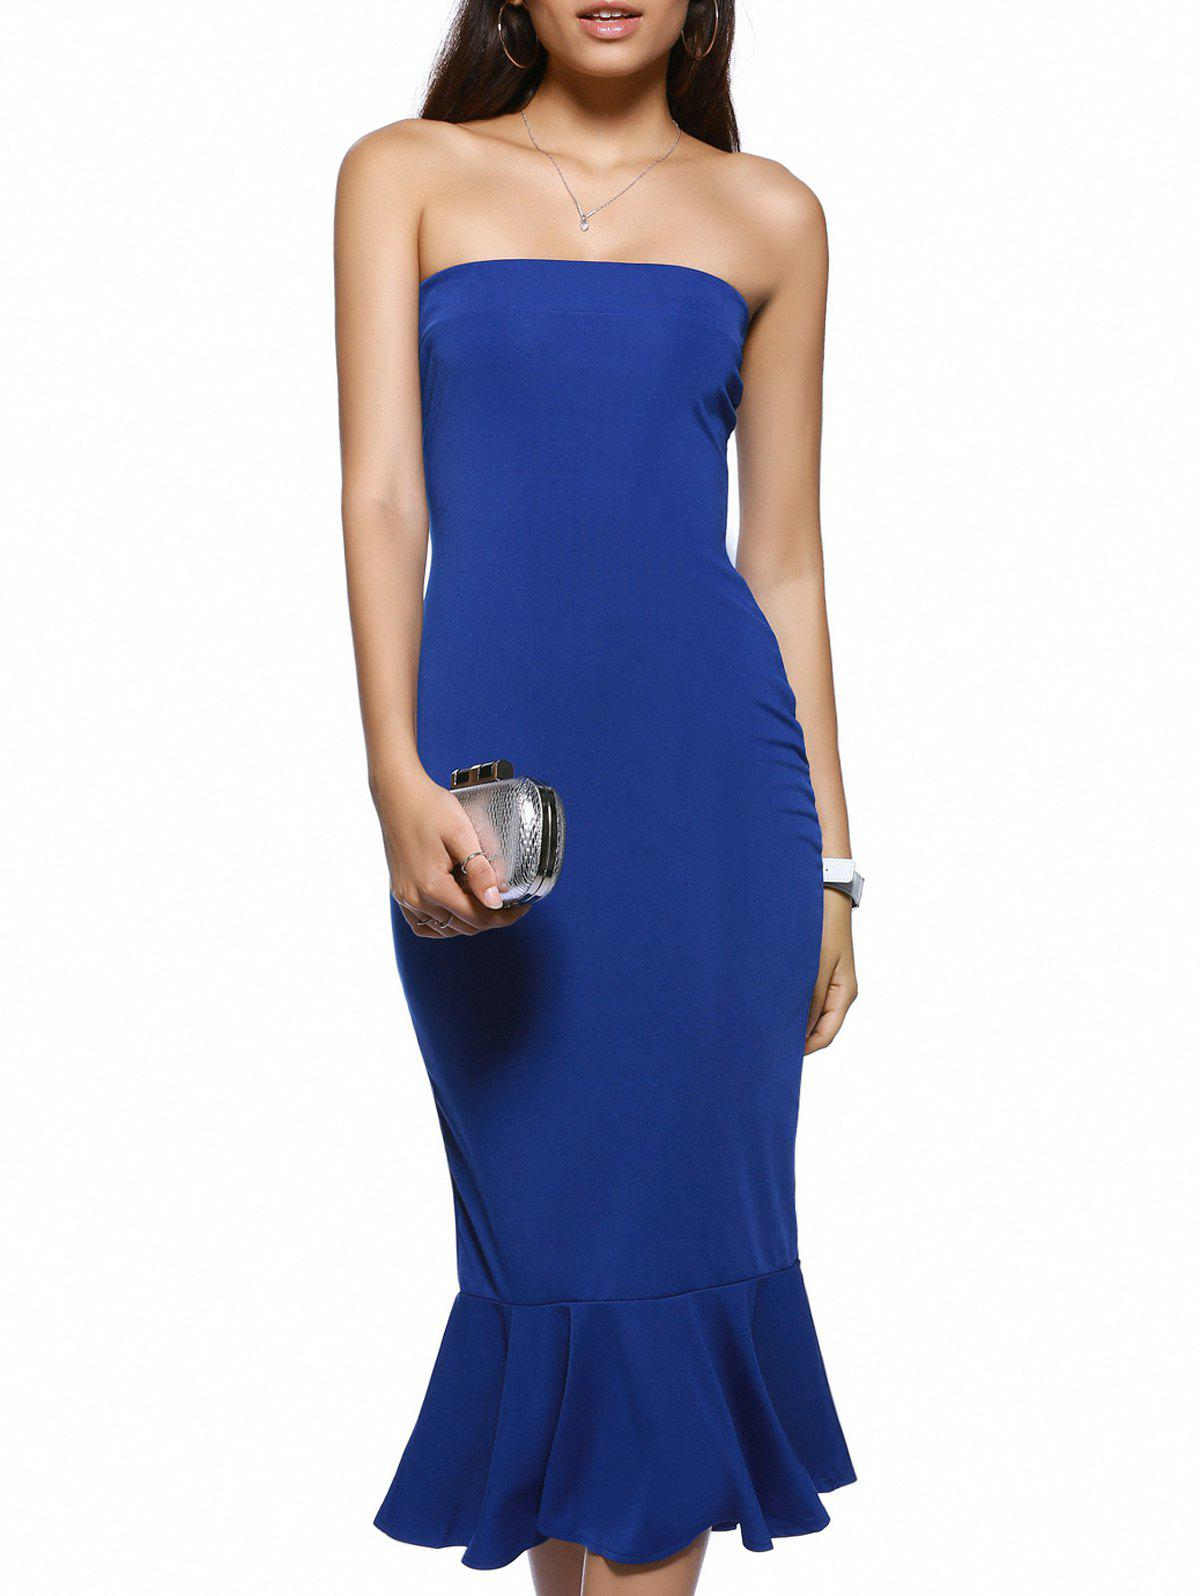 Trendy Strapless Solid Color Backless Bodycon Dress